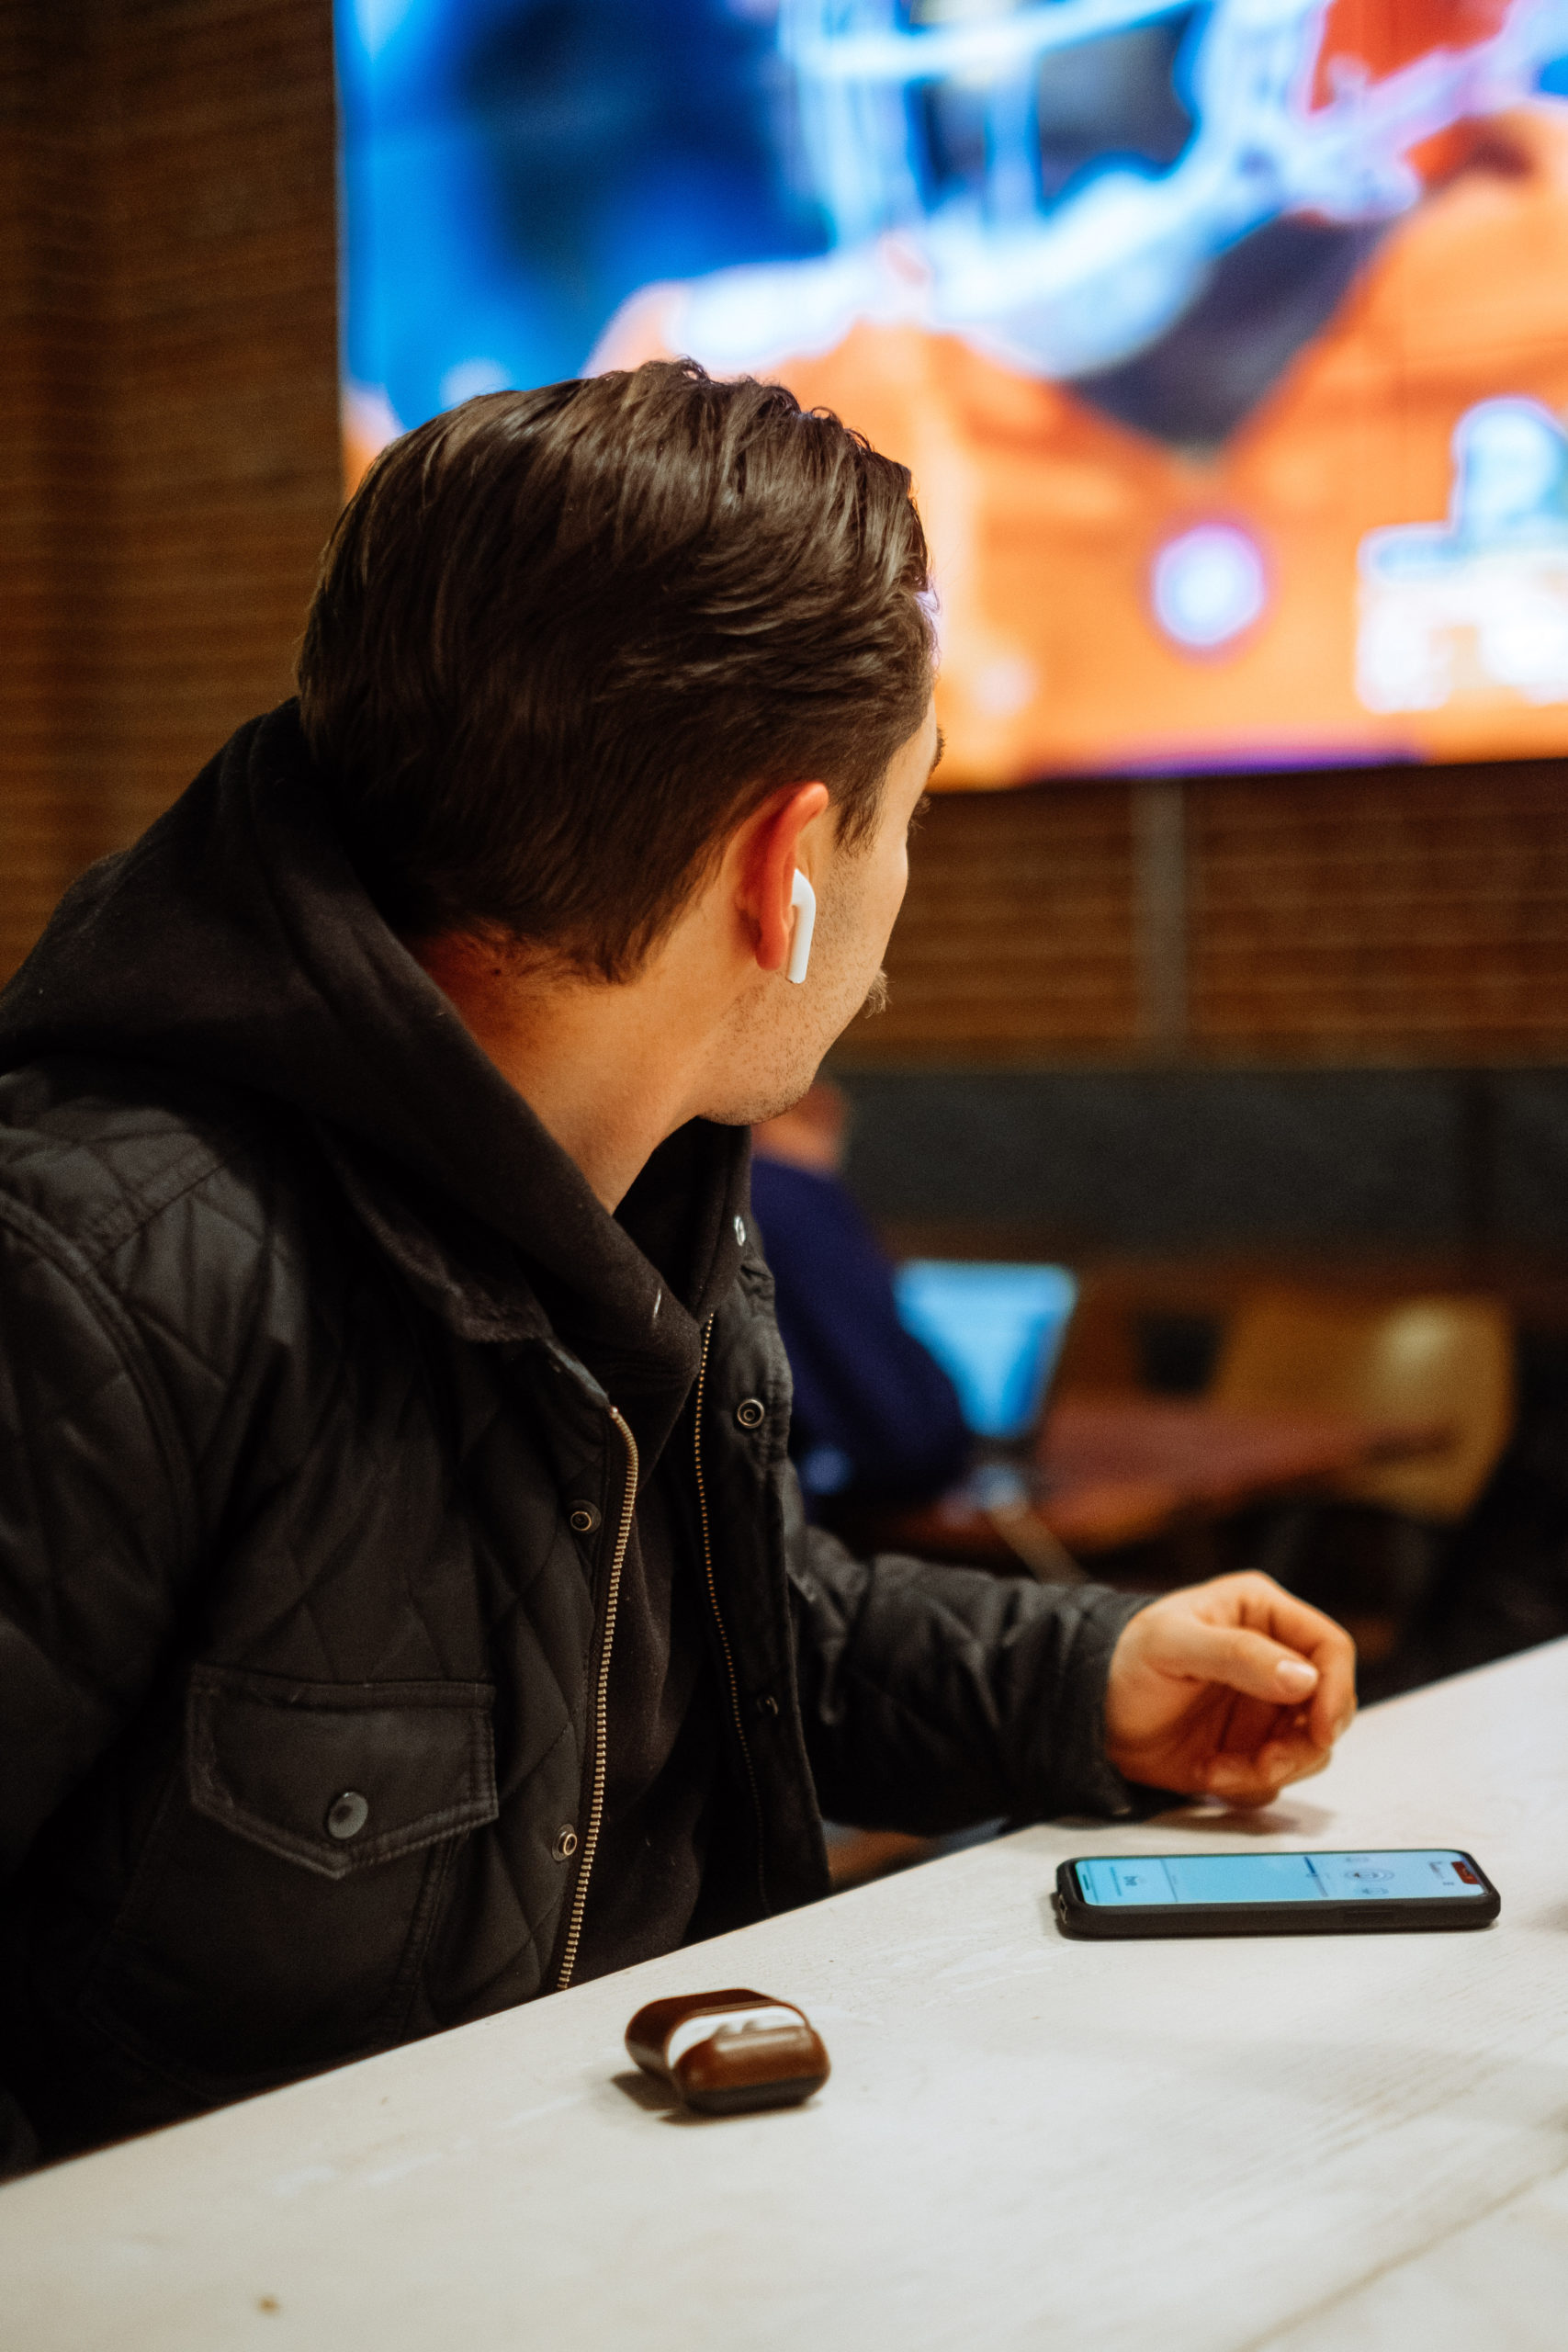 Man Using AudioFetch App Watching Football in Sports Bar